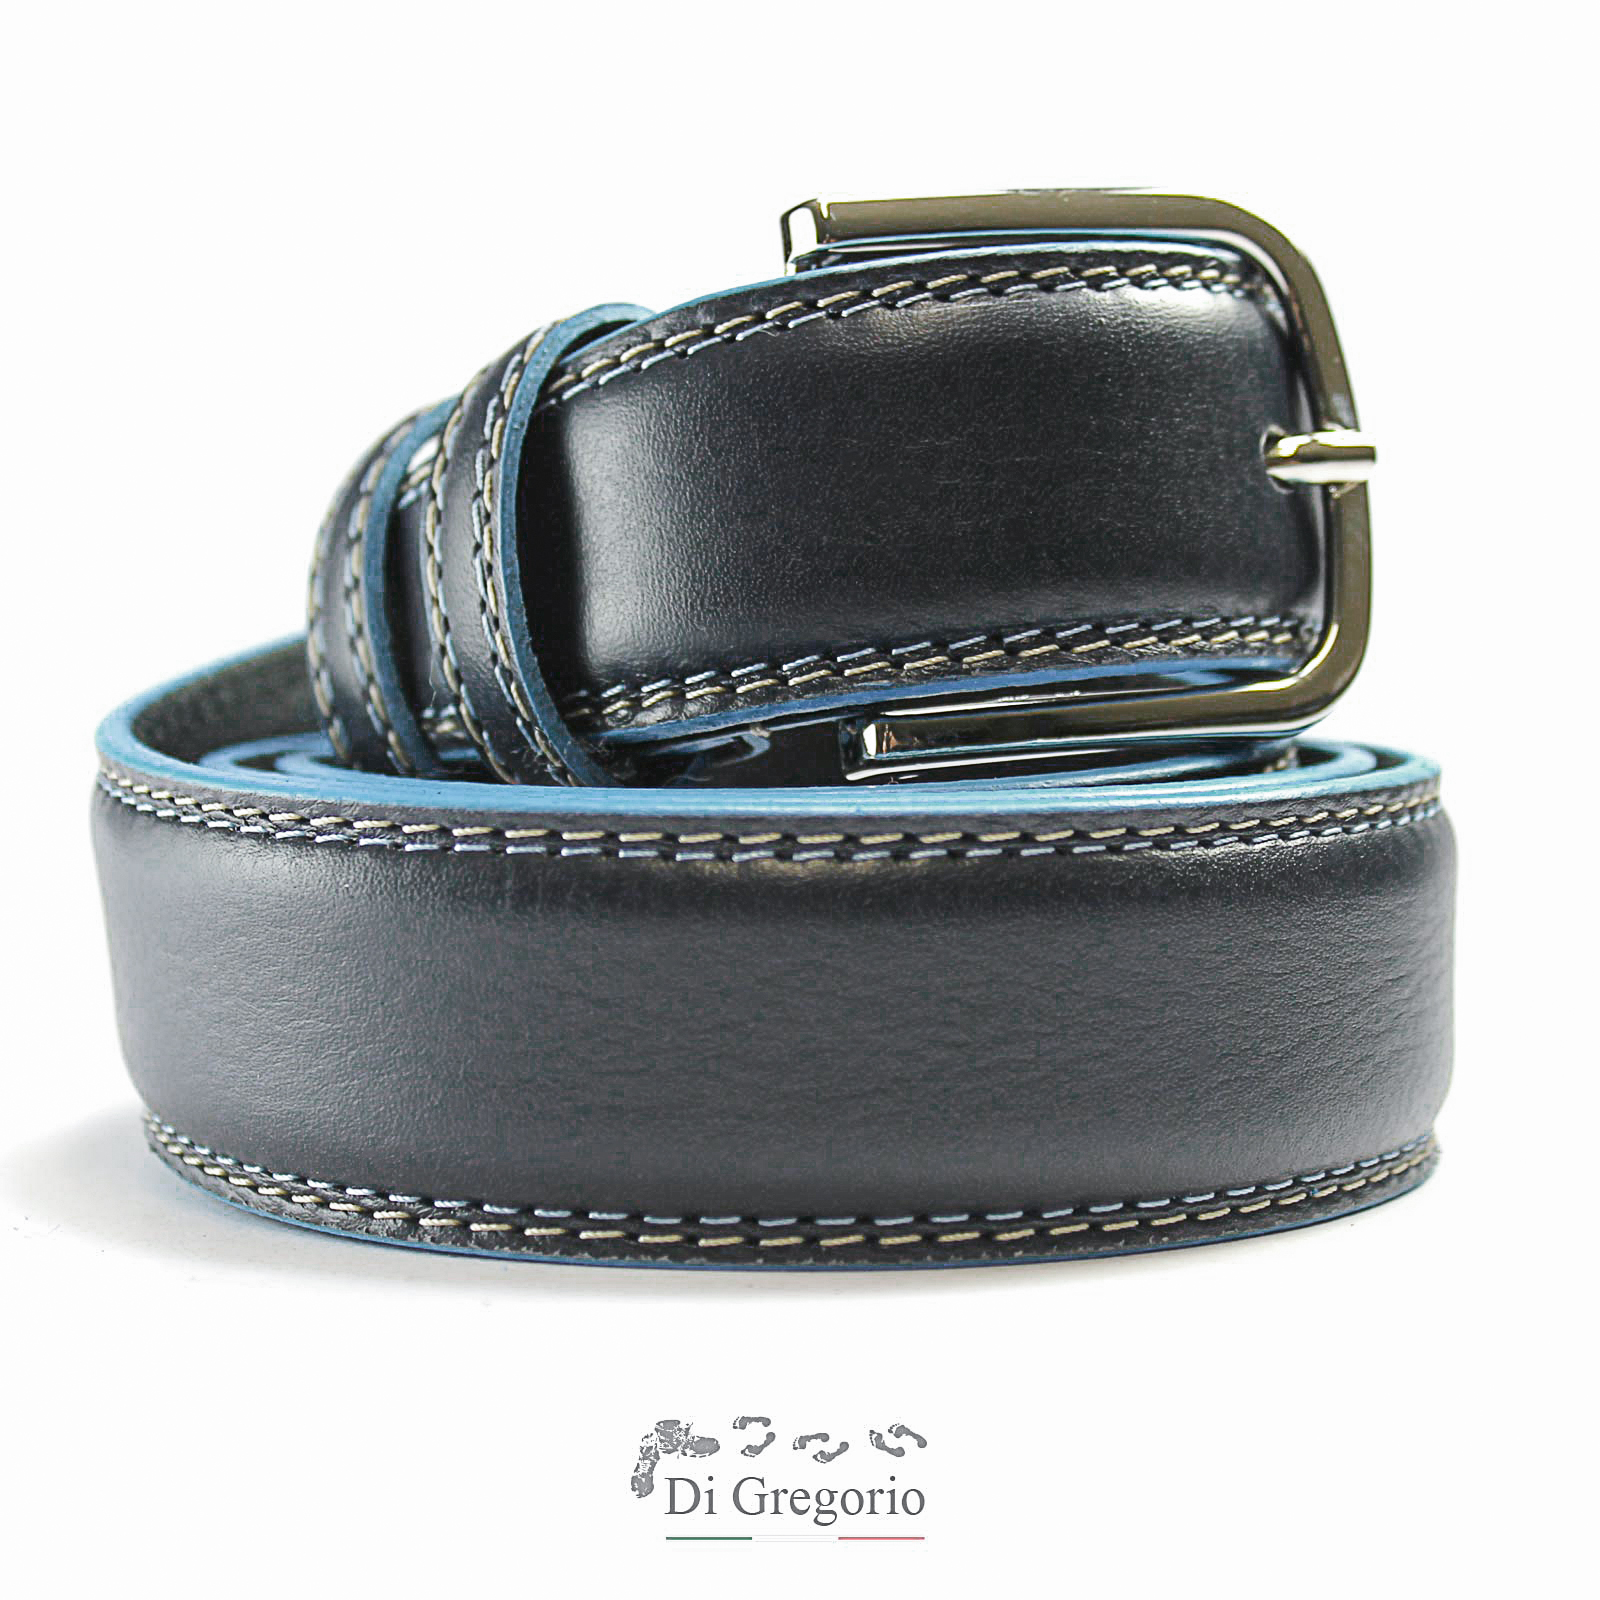 CINTURA IN PELLE DA UOMO COLORI BLU NERO MARRONE BORDO CELESTE MEN'S LEATHER BELT COLORS BLUE BLACK BROWN CELESTE EDGE